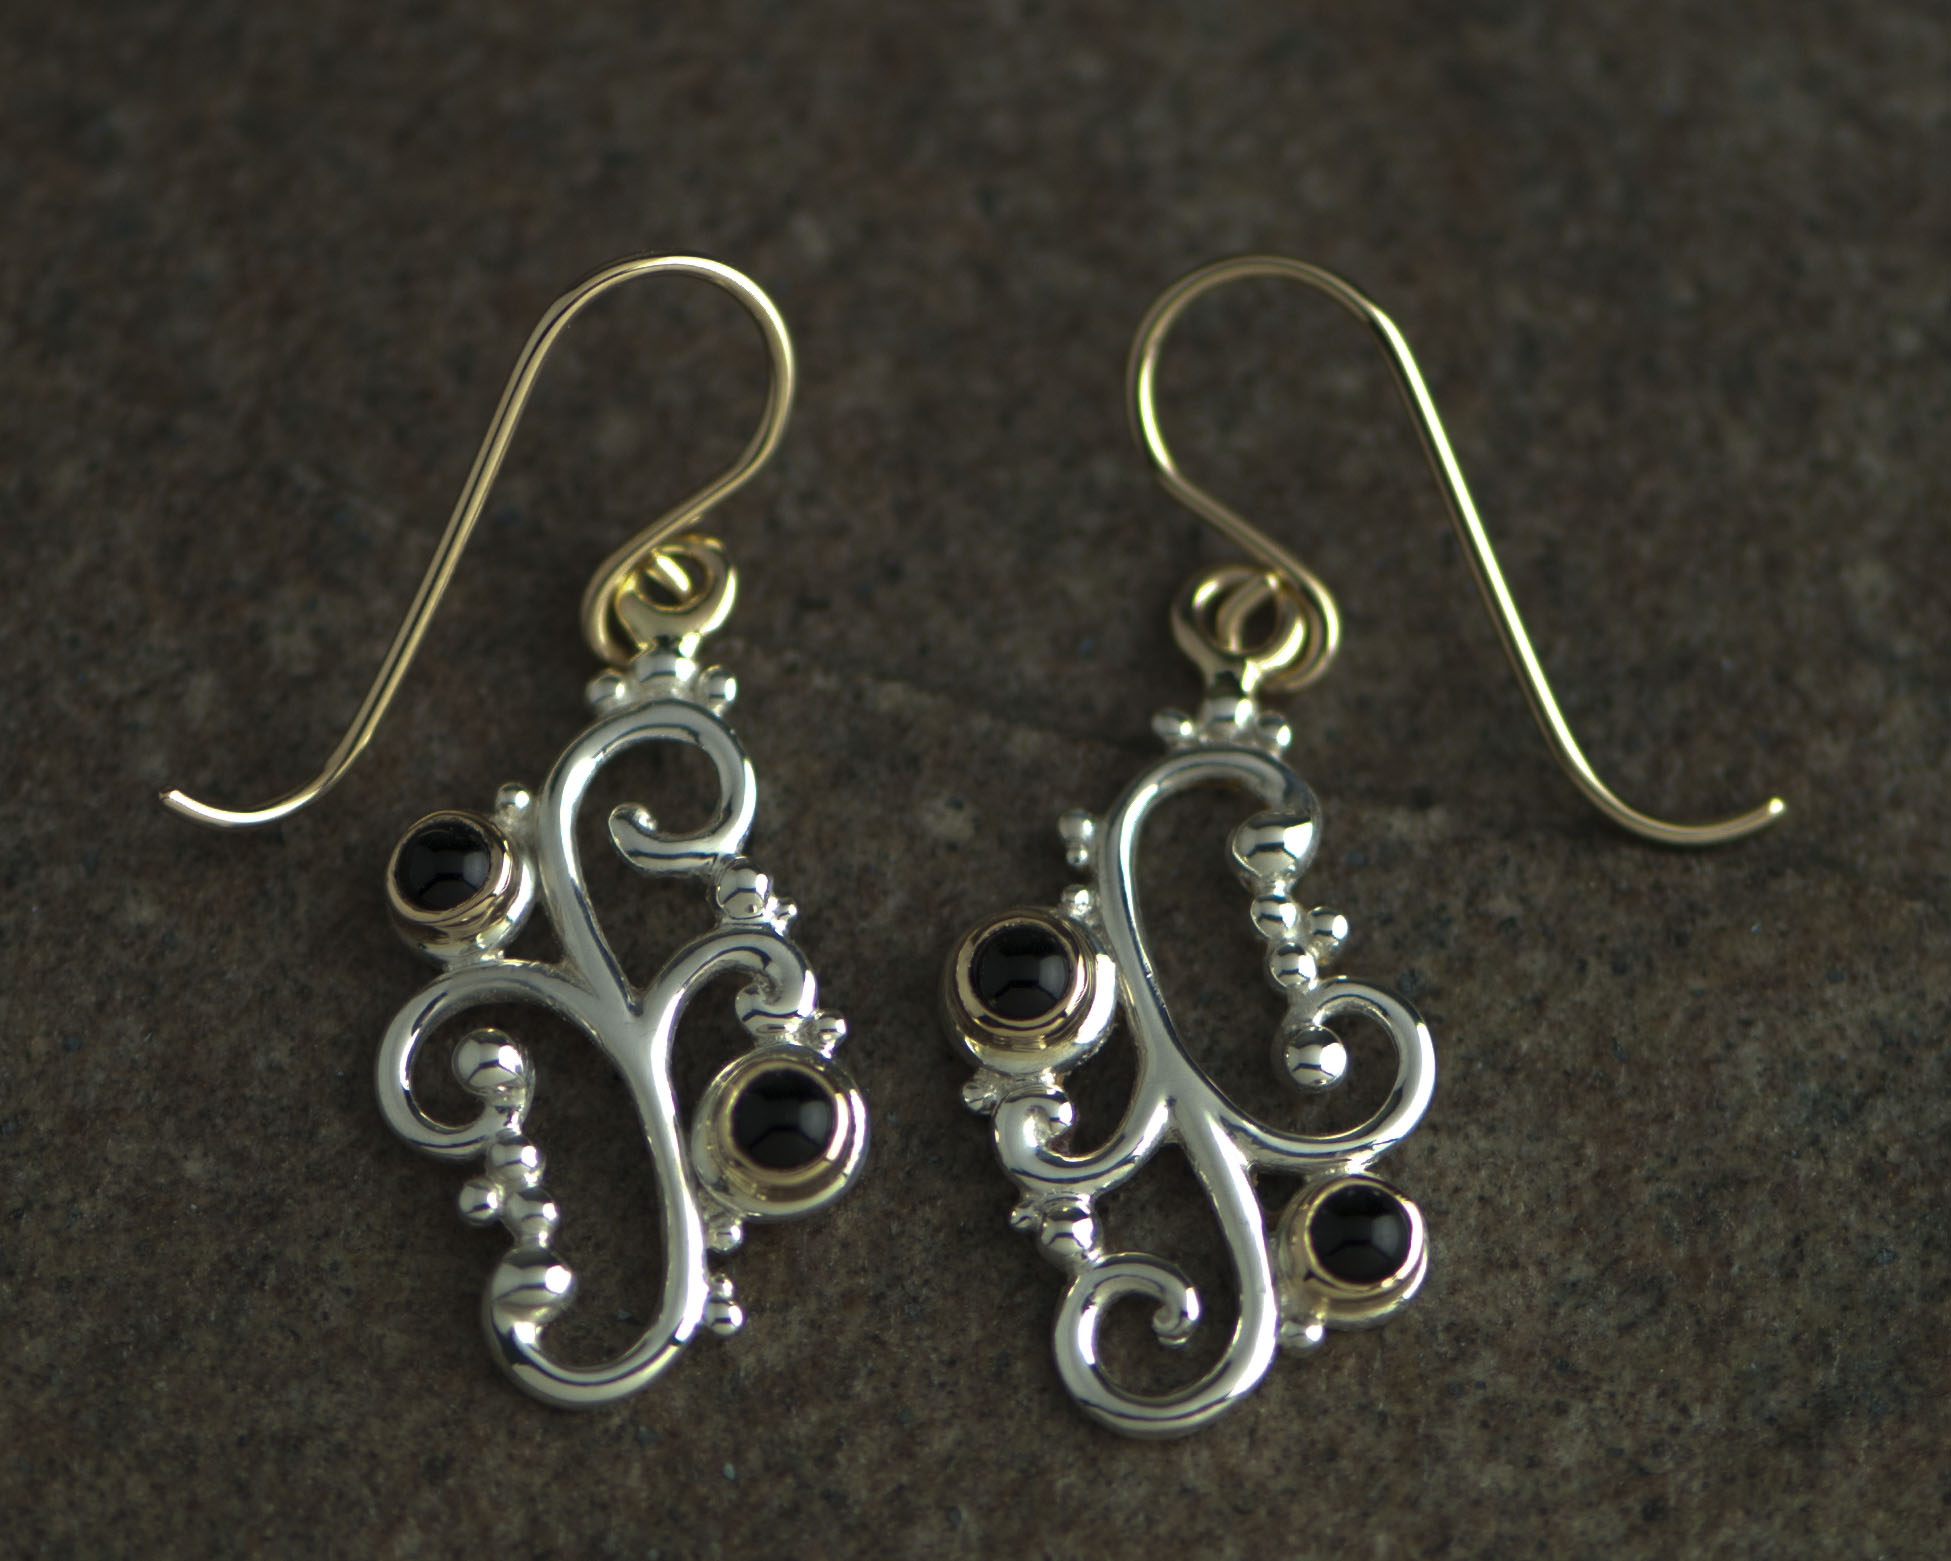 3400-sg filagree earrings